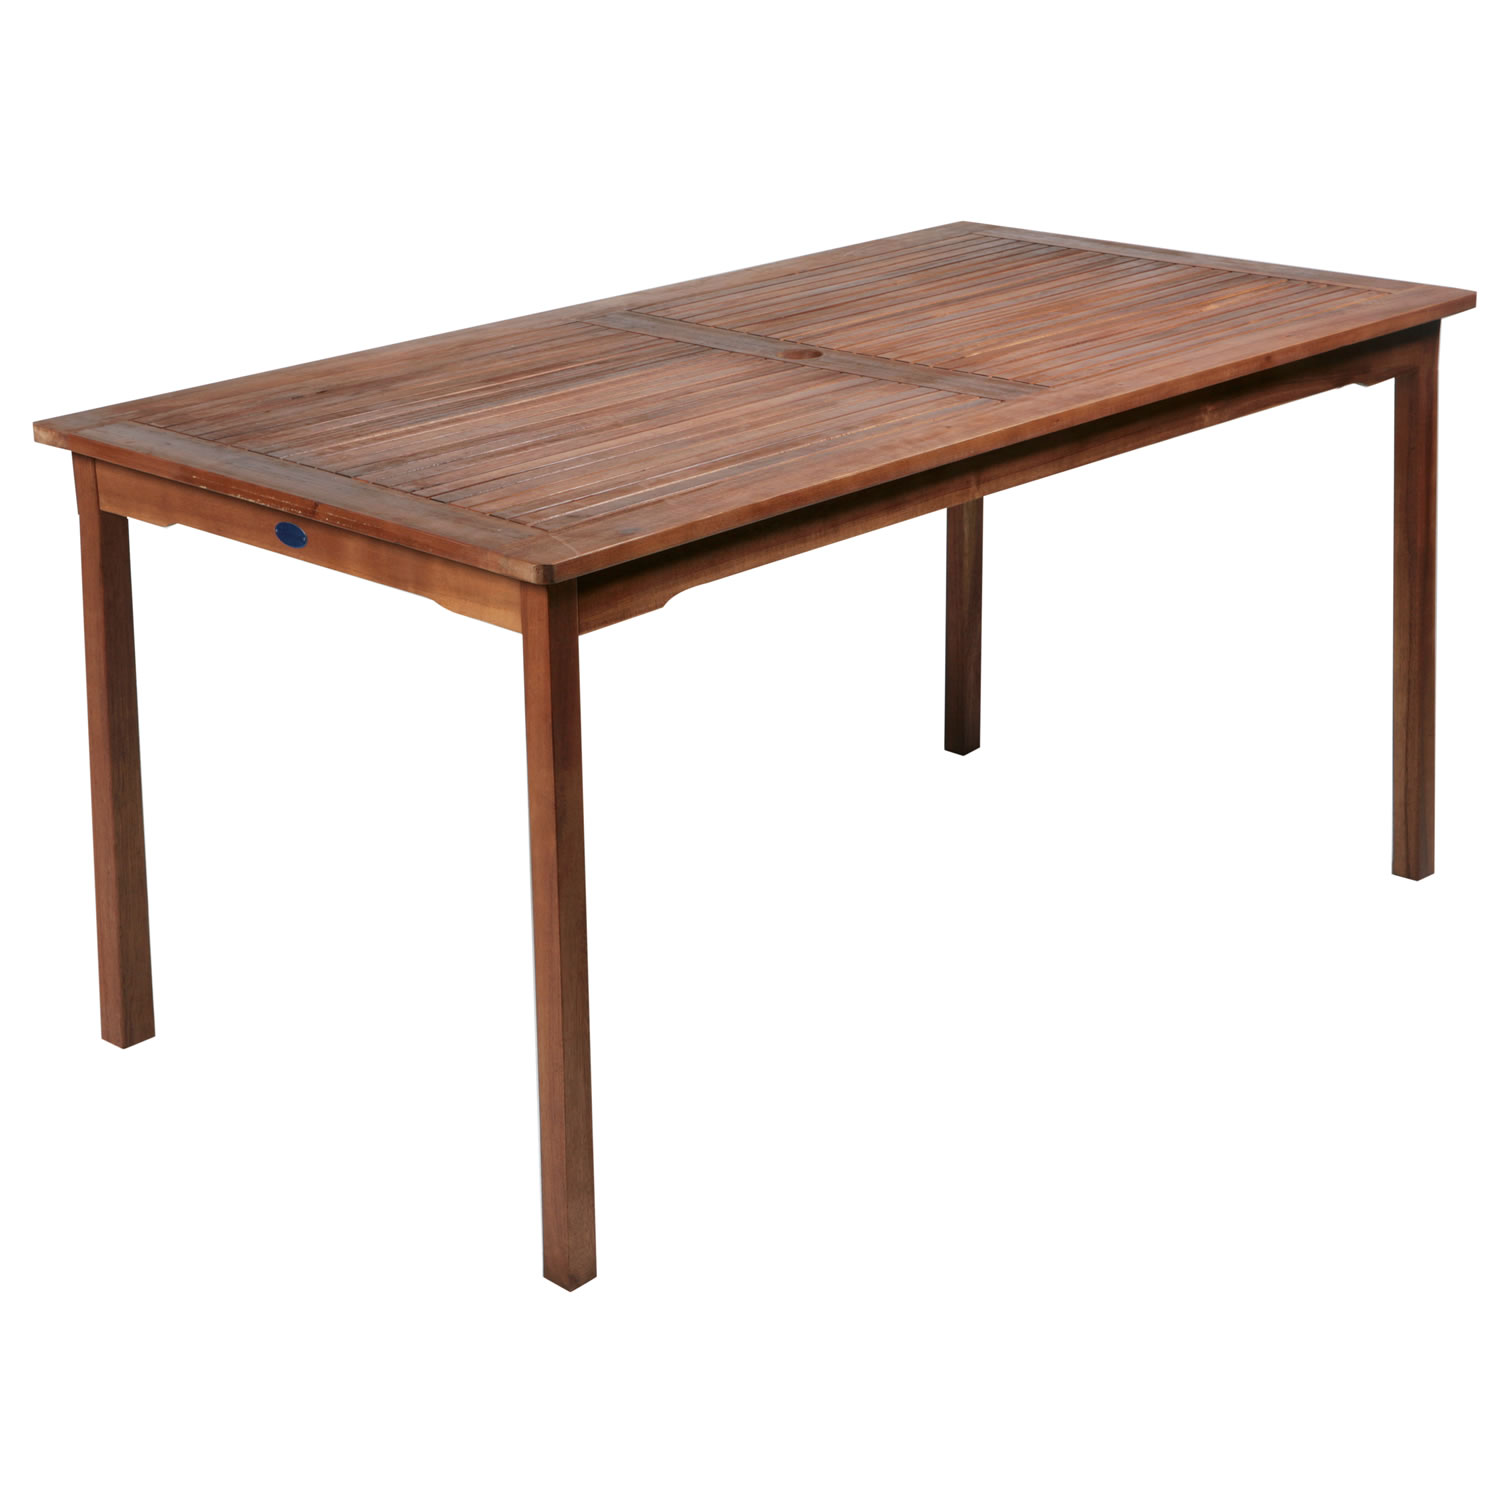 Image of: Simple Wood Patio Table